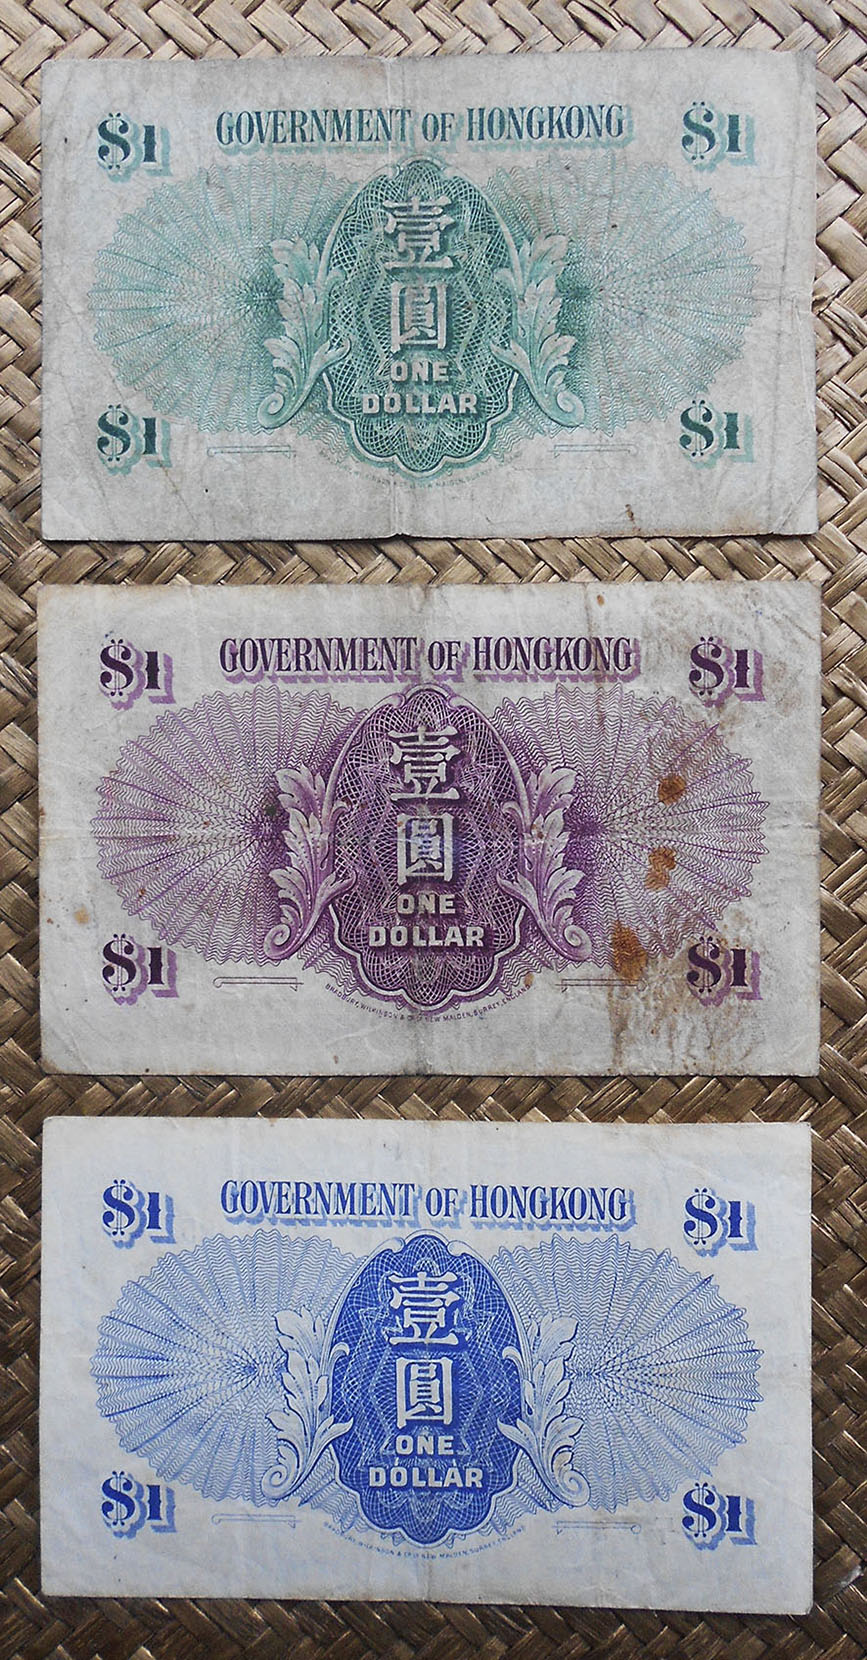 Hong Kong 1 dollar 1952 vs. 1936 vs. 1941 George VI reversos